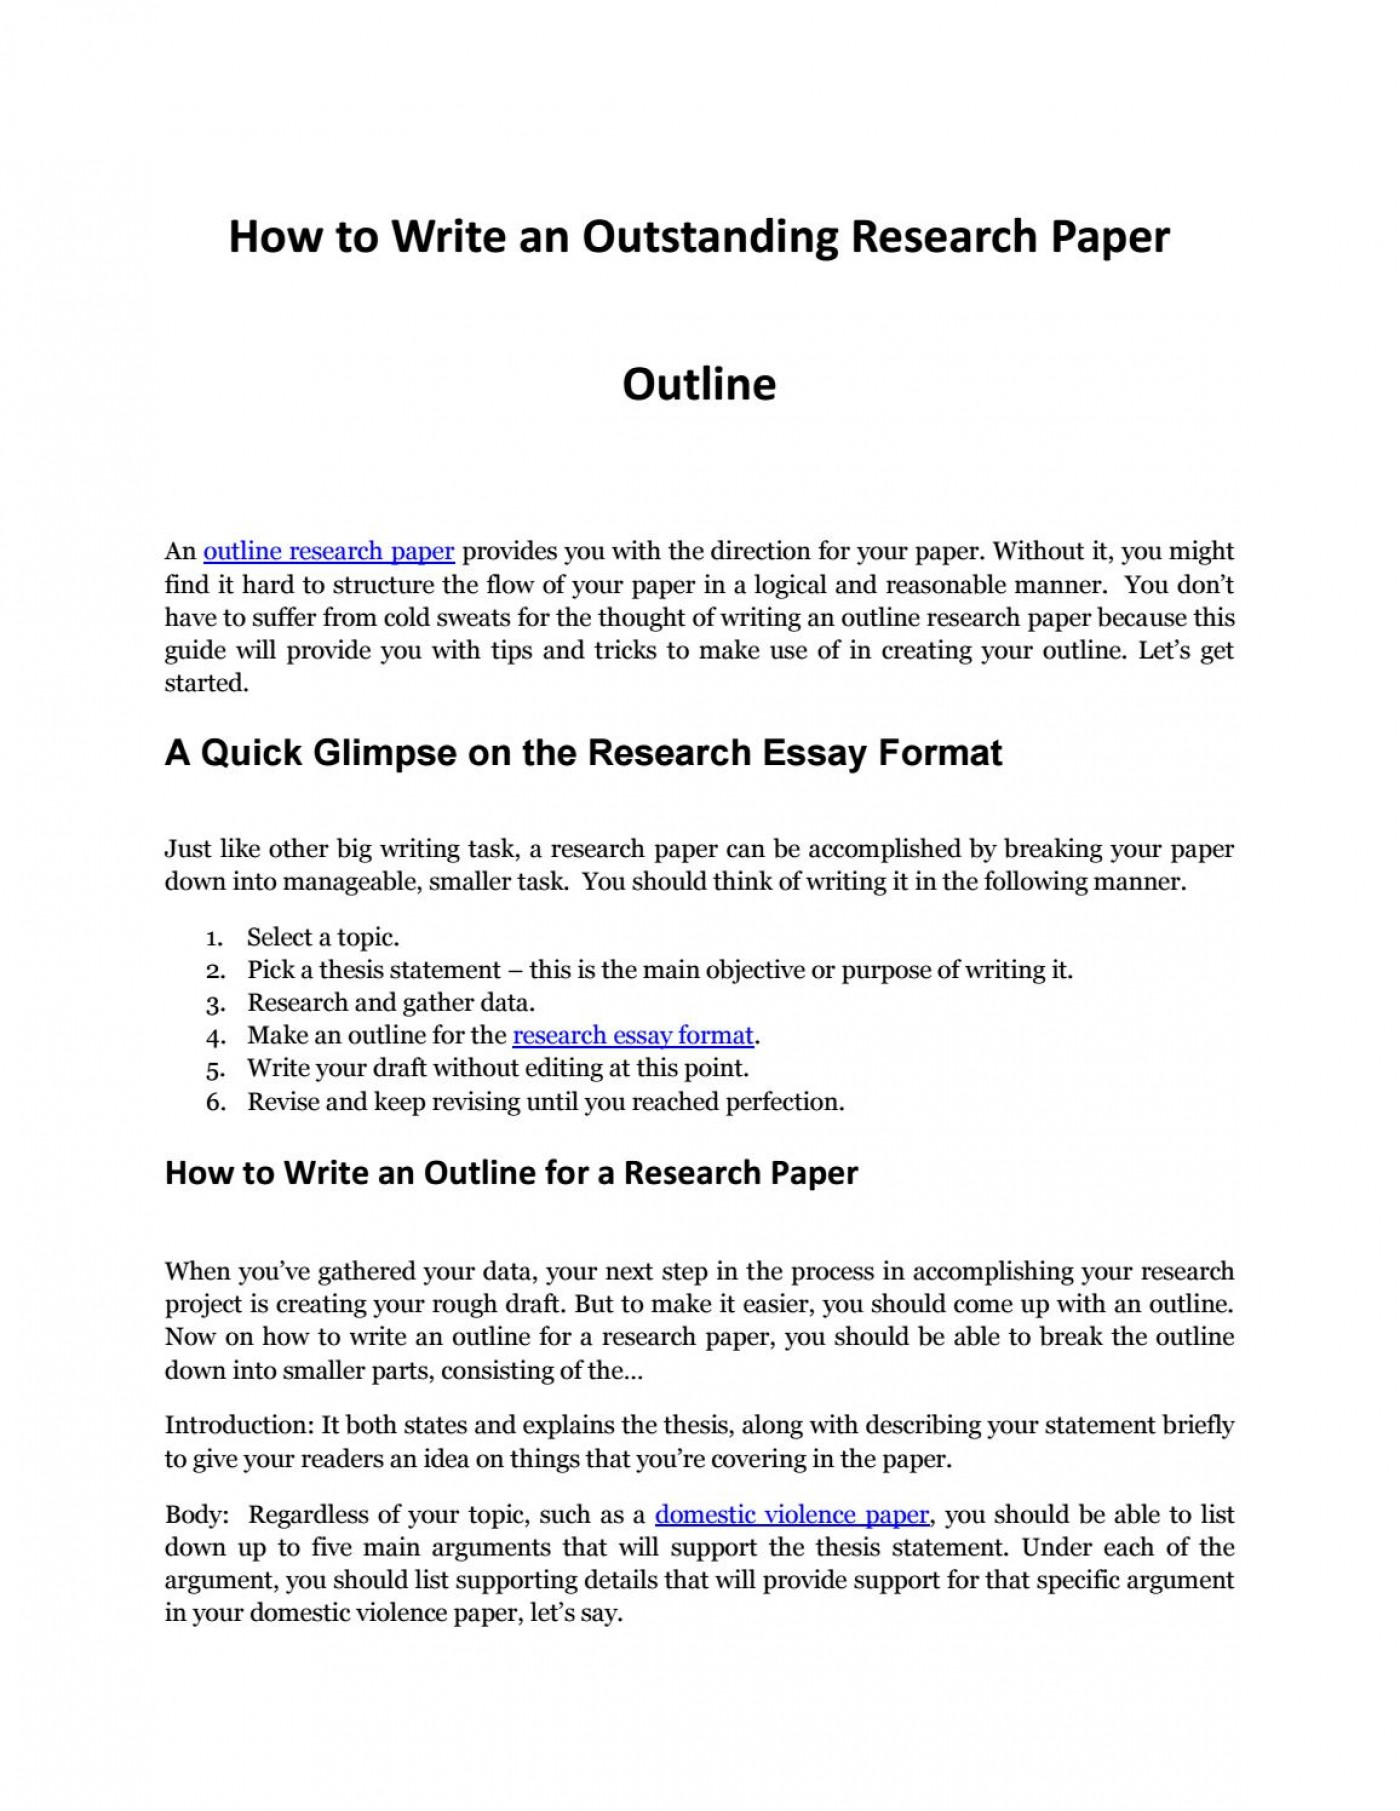 019 Outlines For Research Paper Page 1 Top A Sample Outline Apa Style On Bullying In Schools Writing An 1400